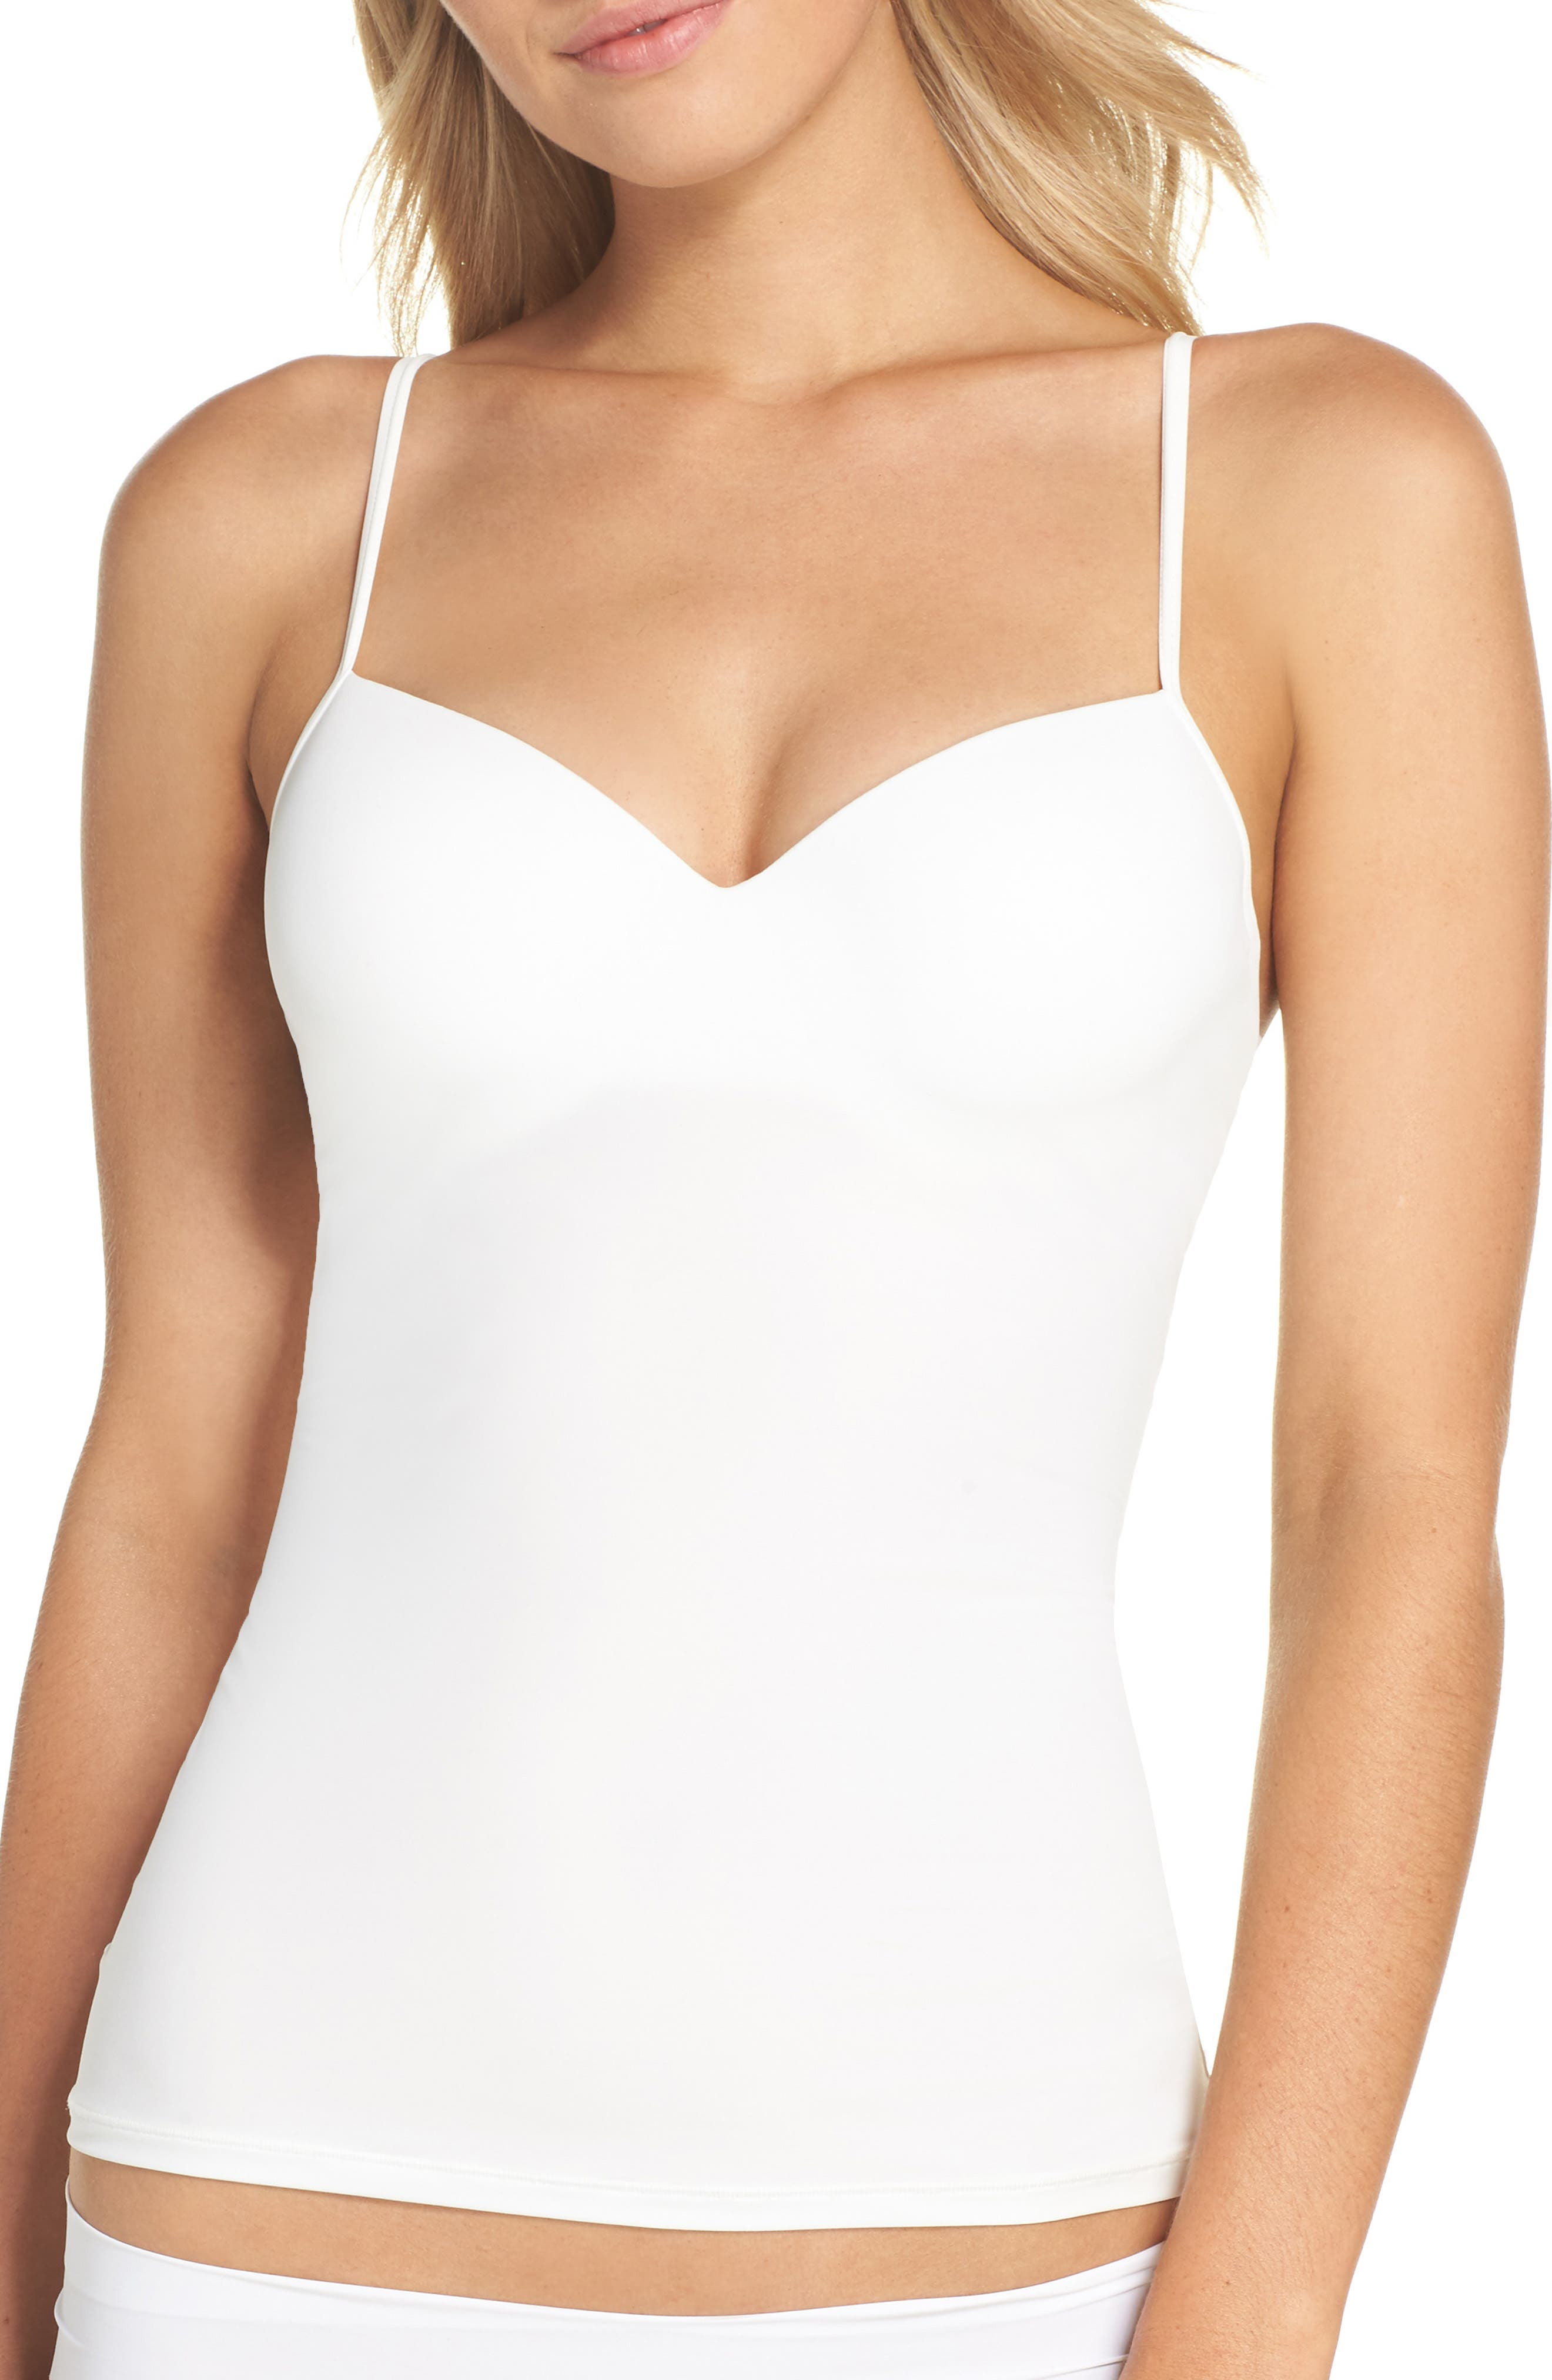 331d724937826 ... UPC 786337369385 product image for Hanro  Allure  Built-In Bra Camisole